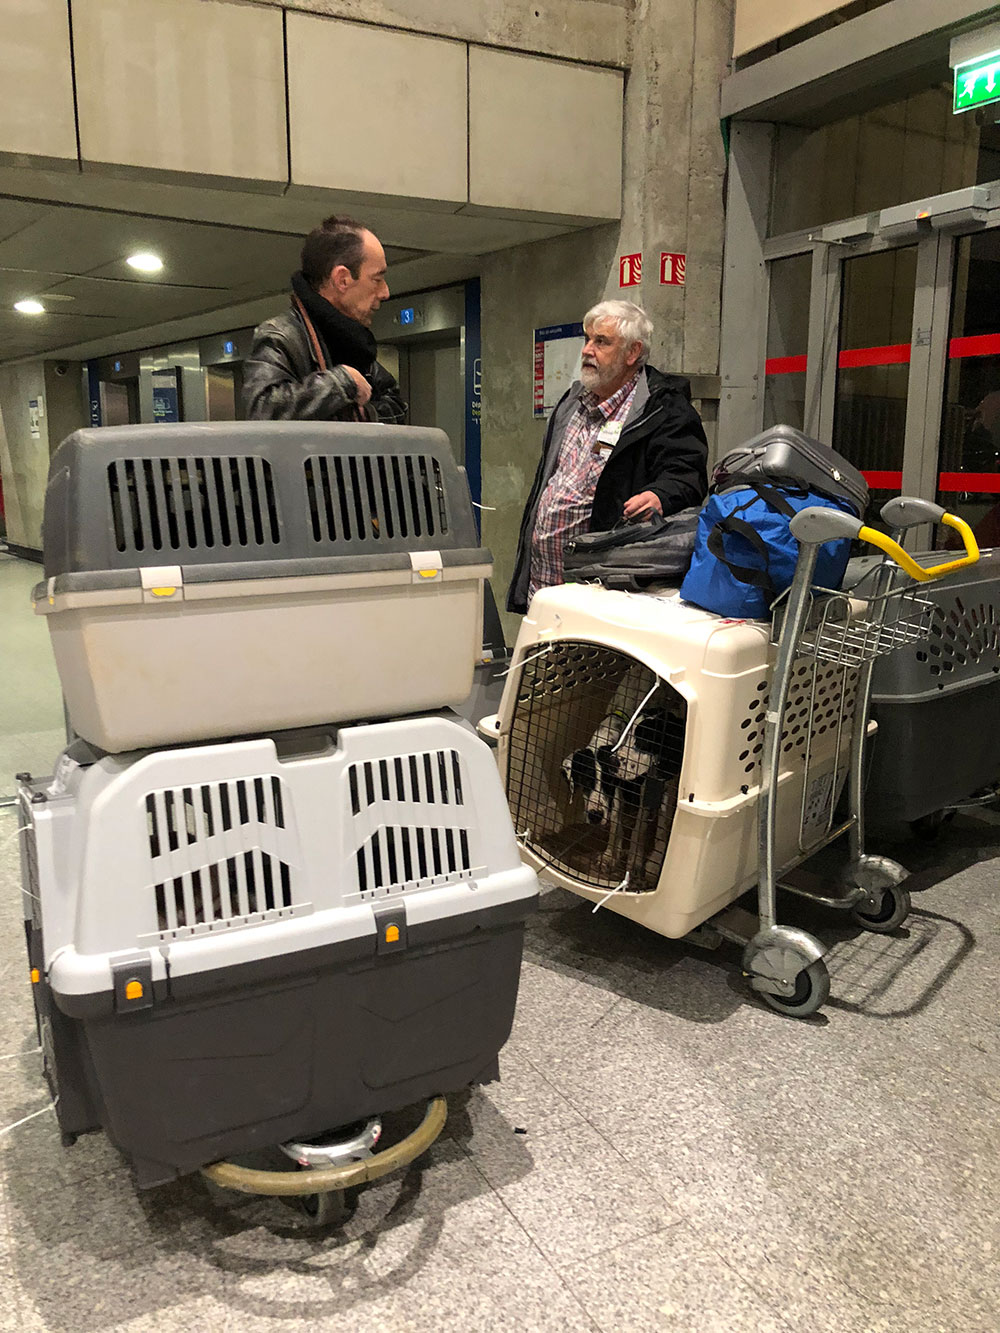 Courier Richard was waiting for us in arrivals, ready to help us get the dogs into the waiting Animalcouriers van